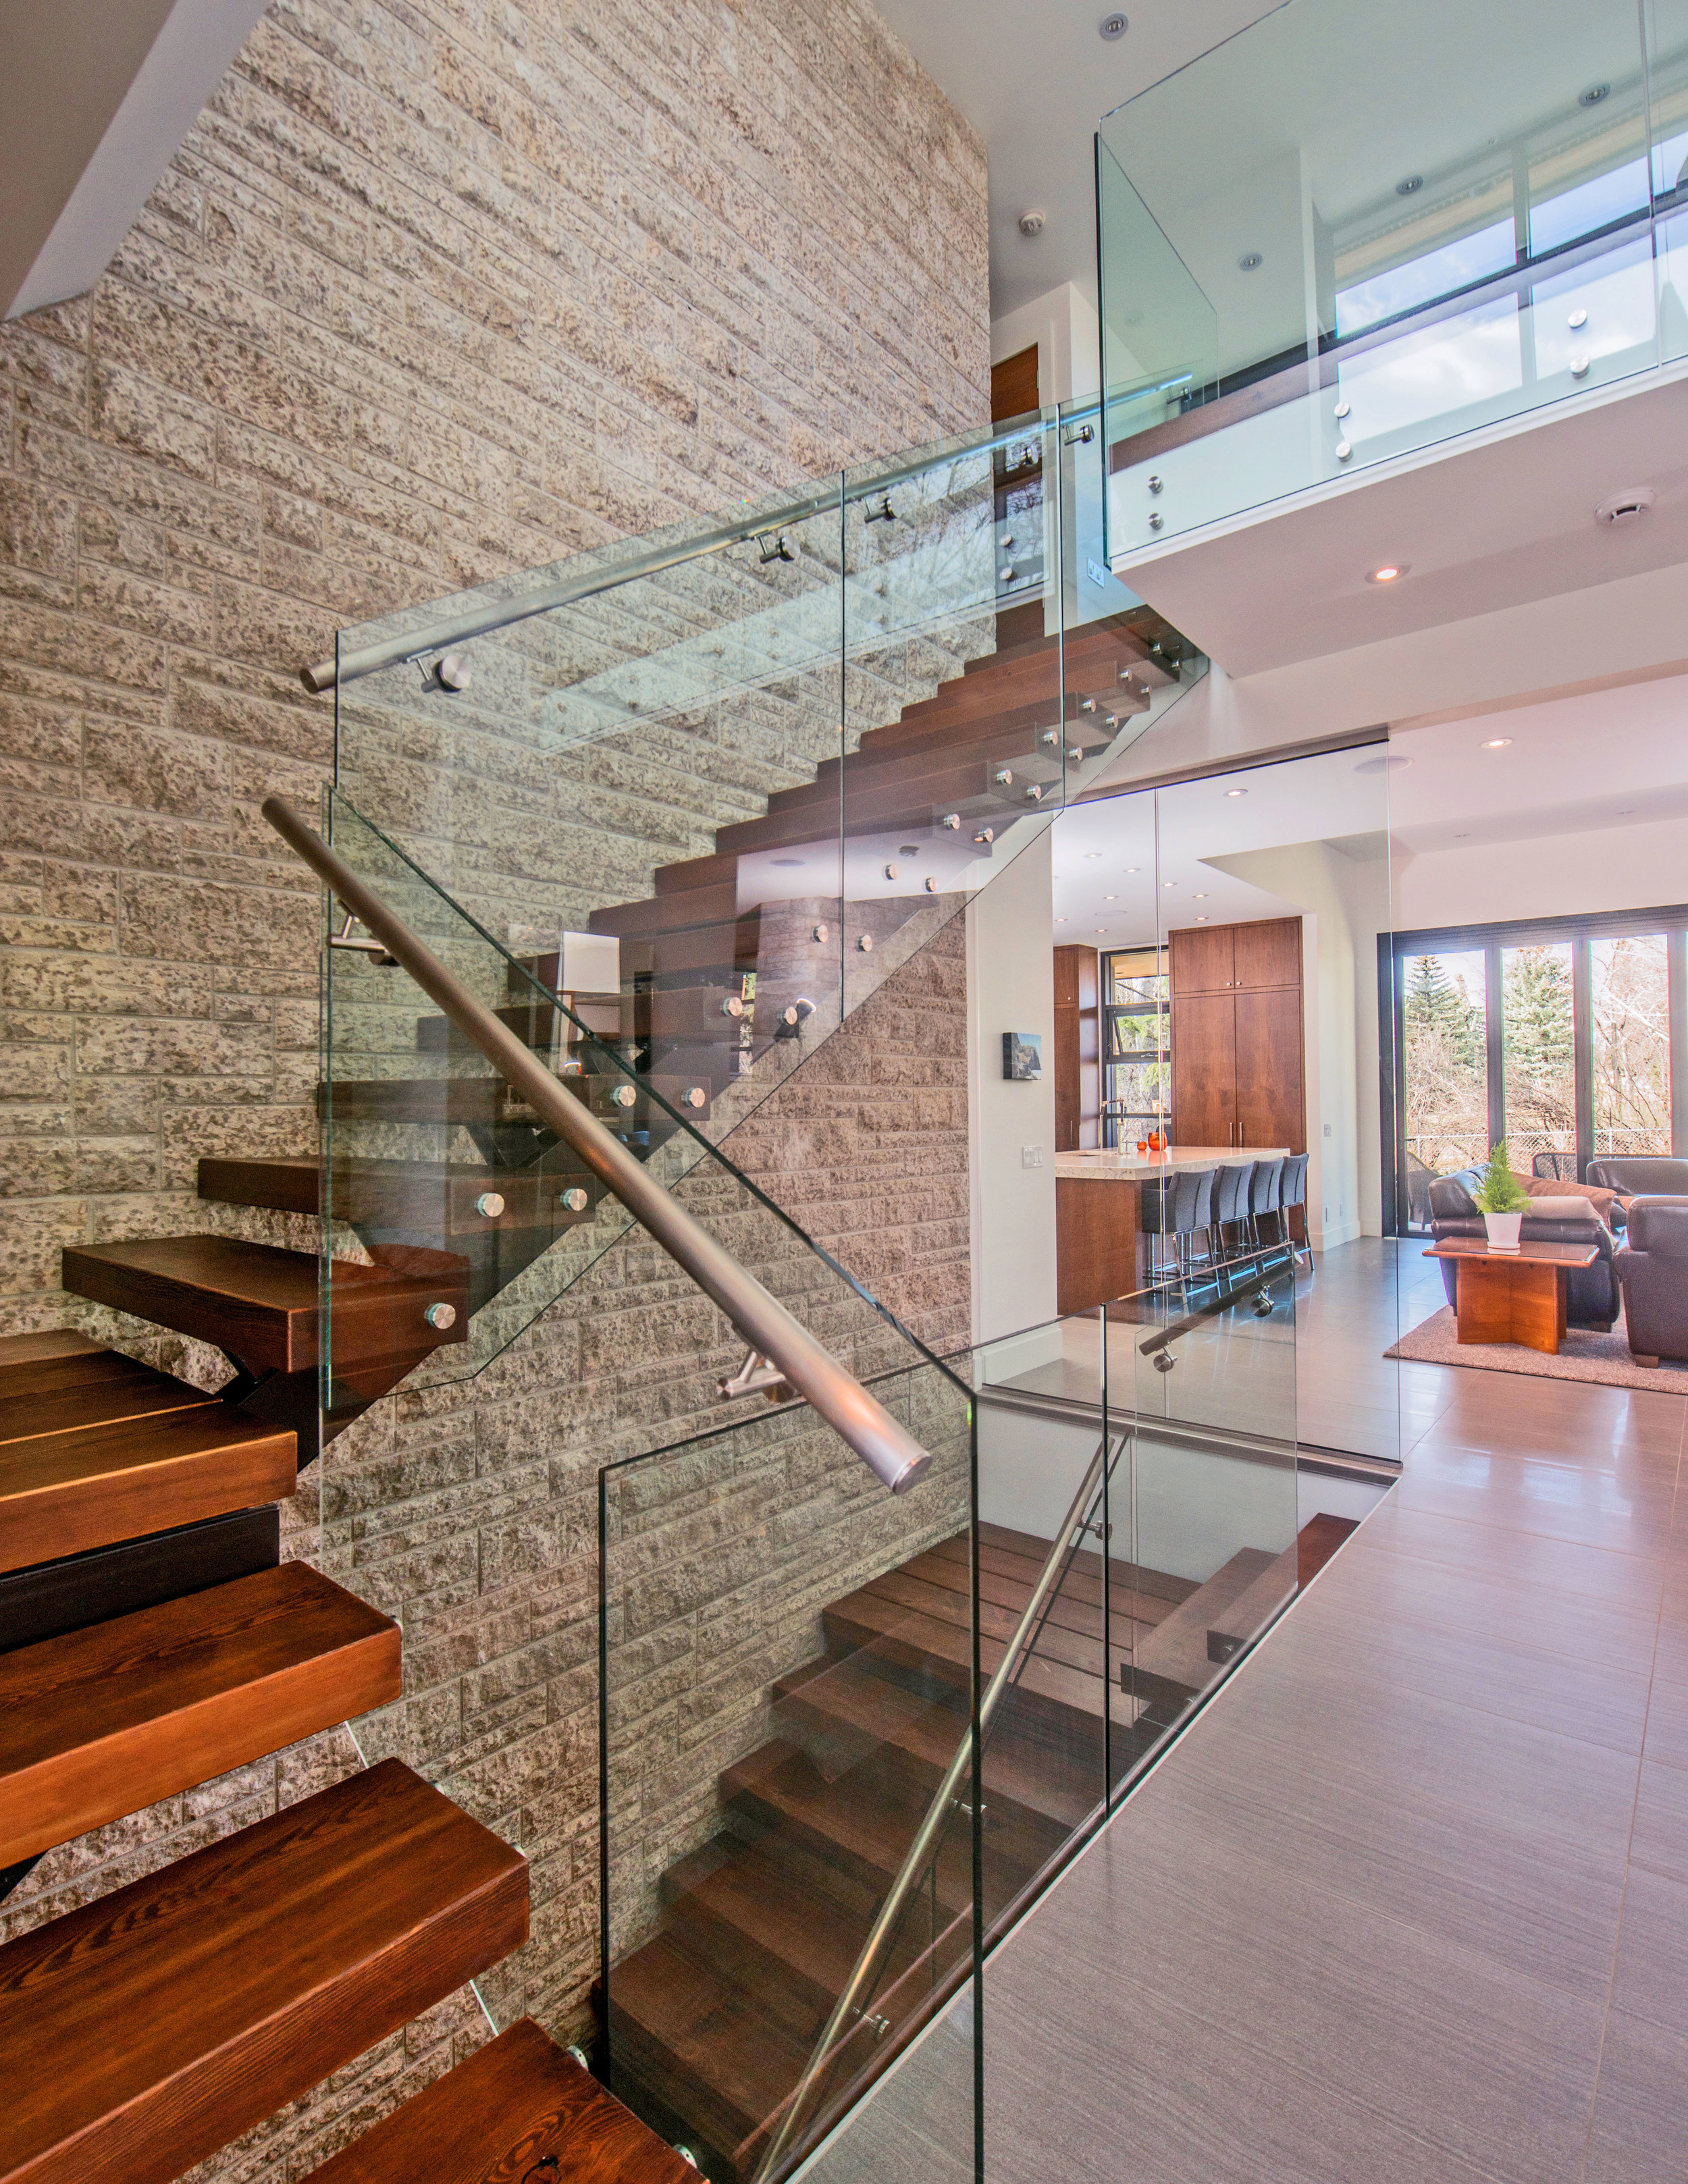 Stairs-Up-and-Down-1.jpg